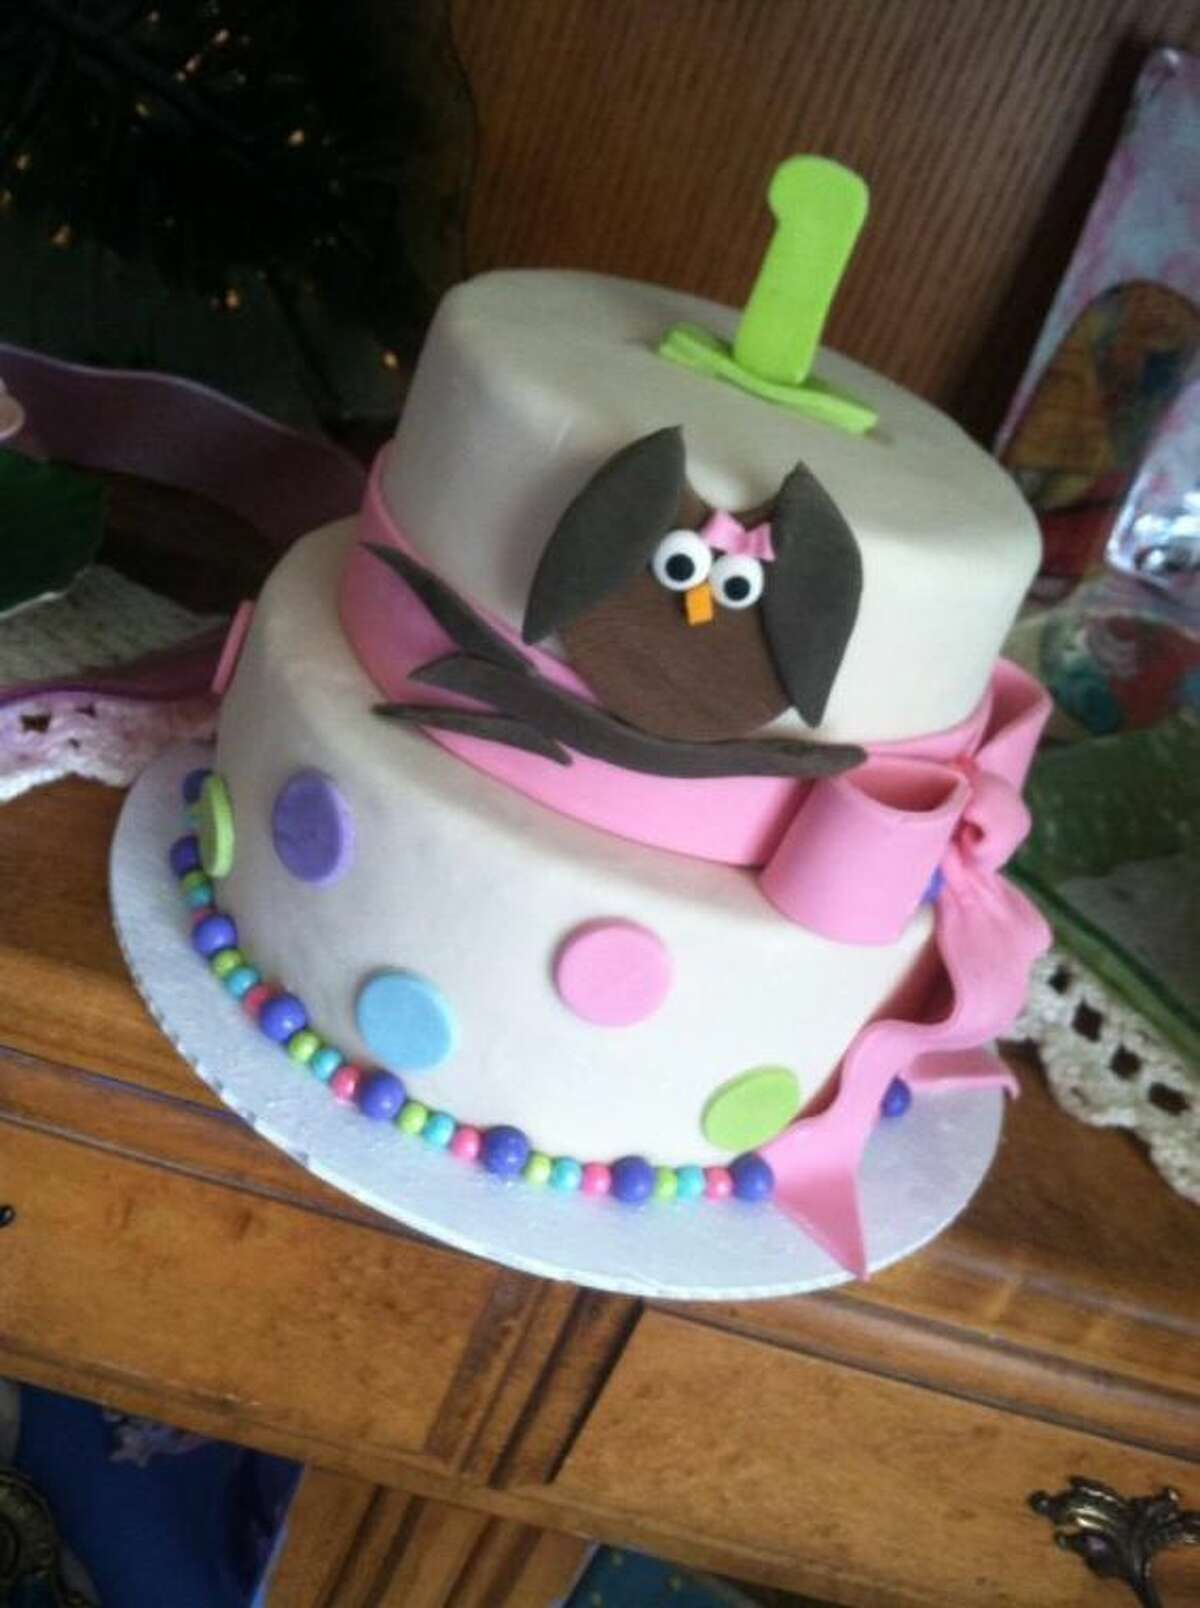 Angie Sweeten made this owl-inspired birthday cake for one lucky little child.